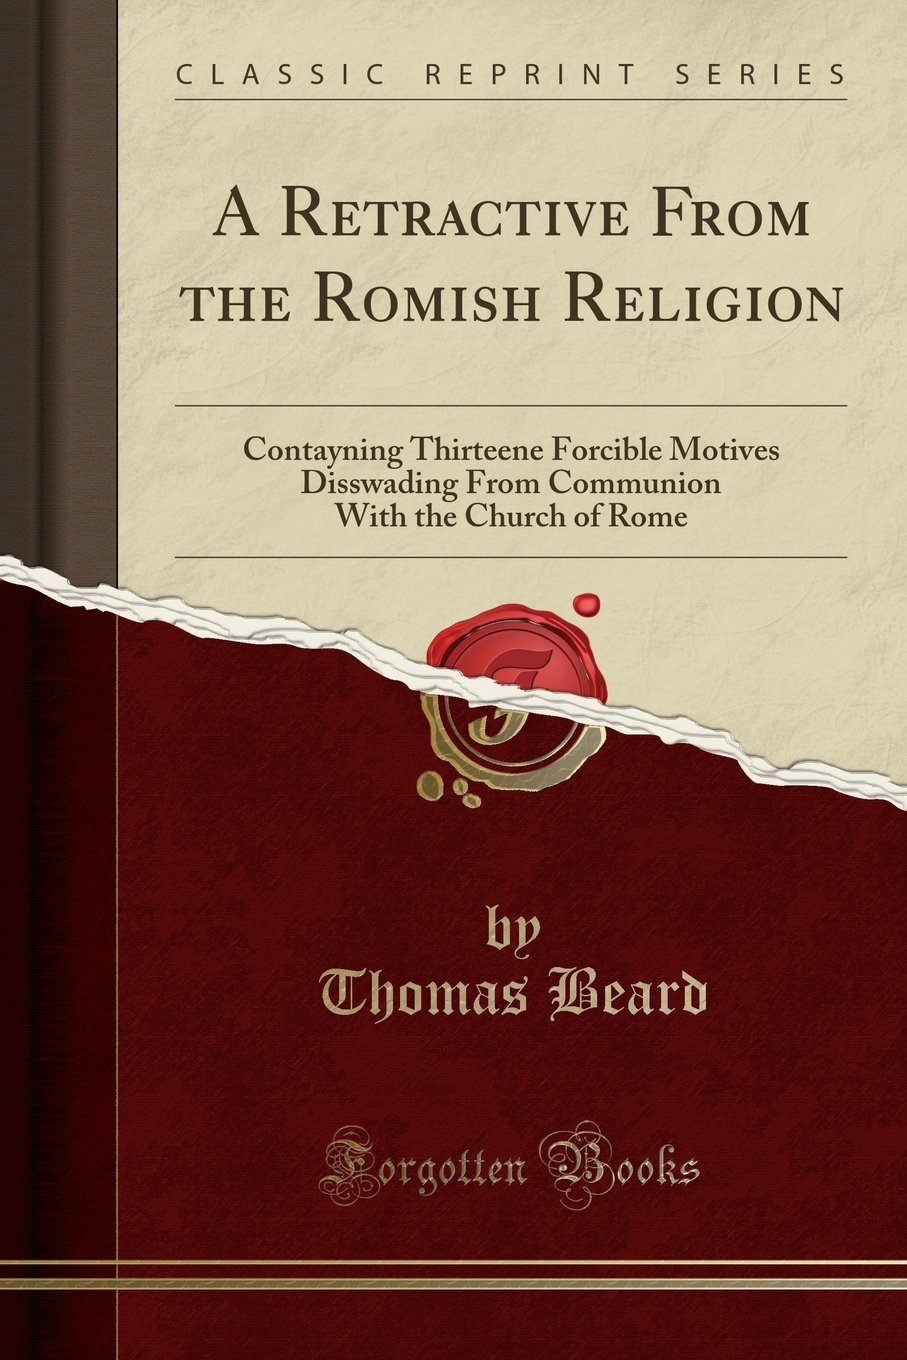 Download A Retractive From the Romish Religion: Contayning Thirteene Forcible Motives Disswading From Communion With the Church of Rome (Classic Reprint) pdf epub